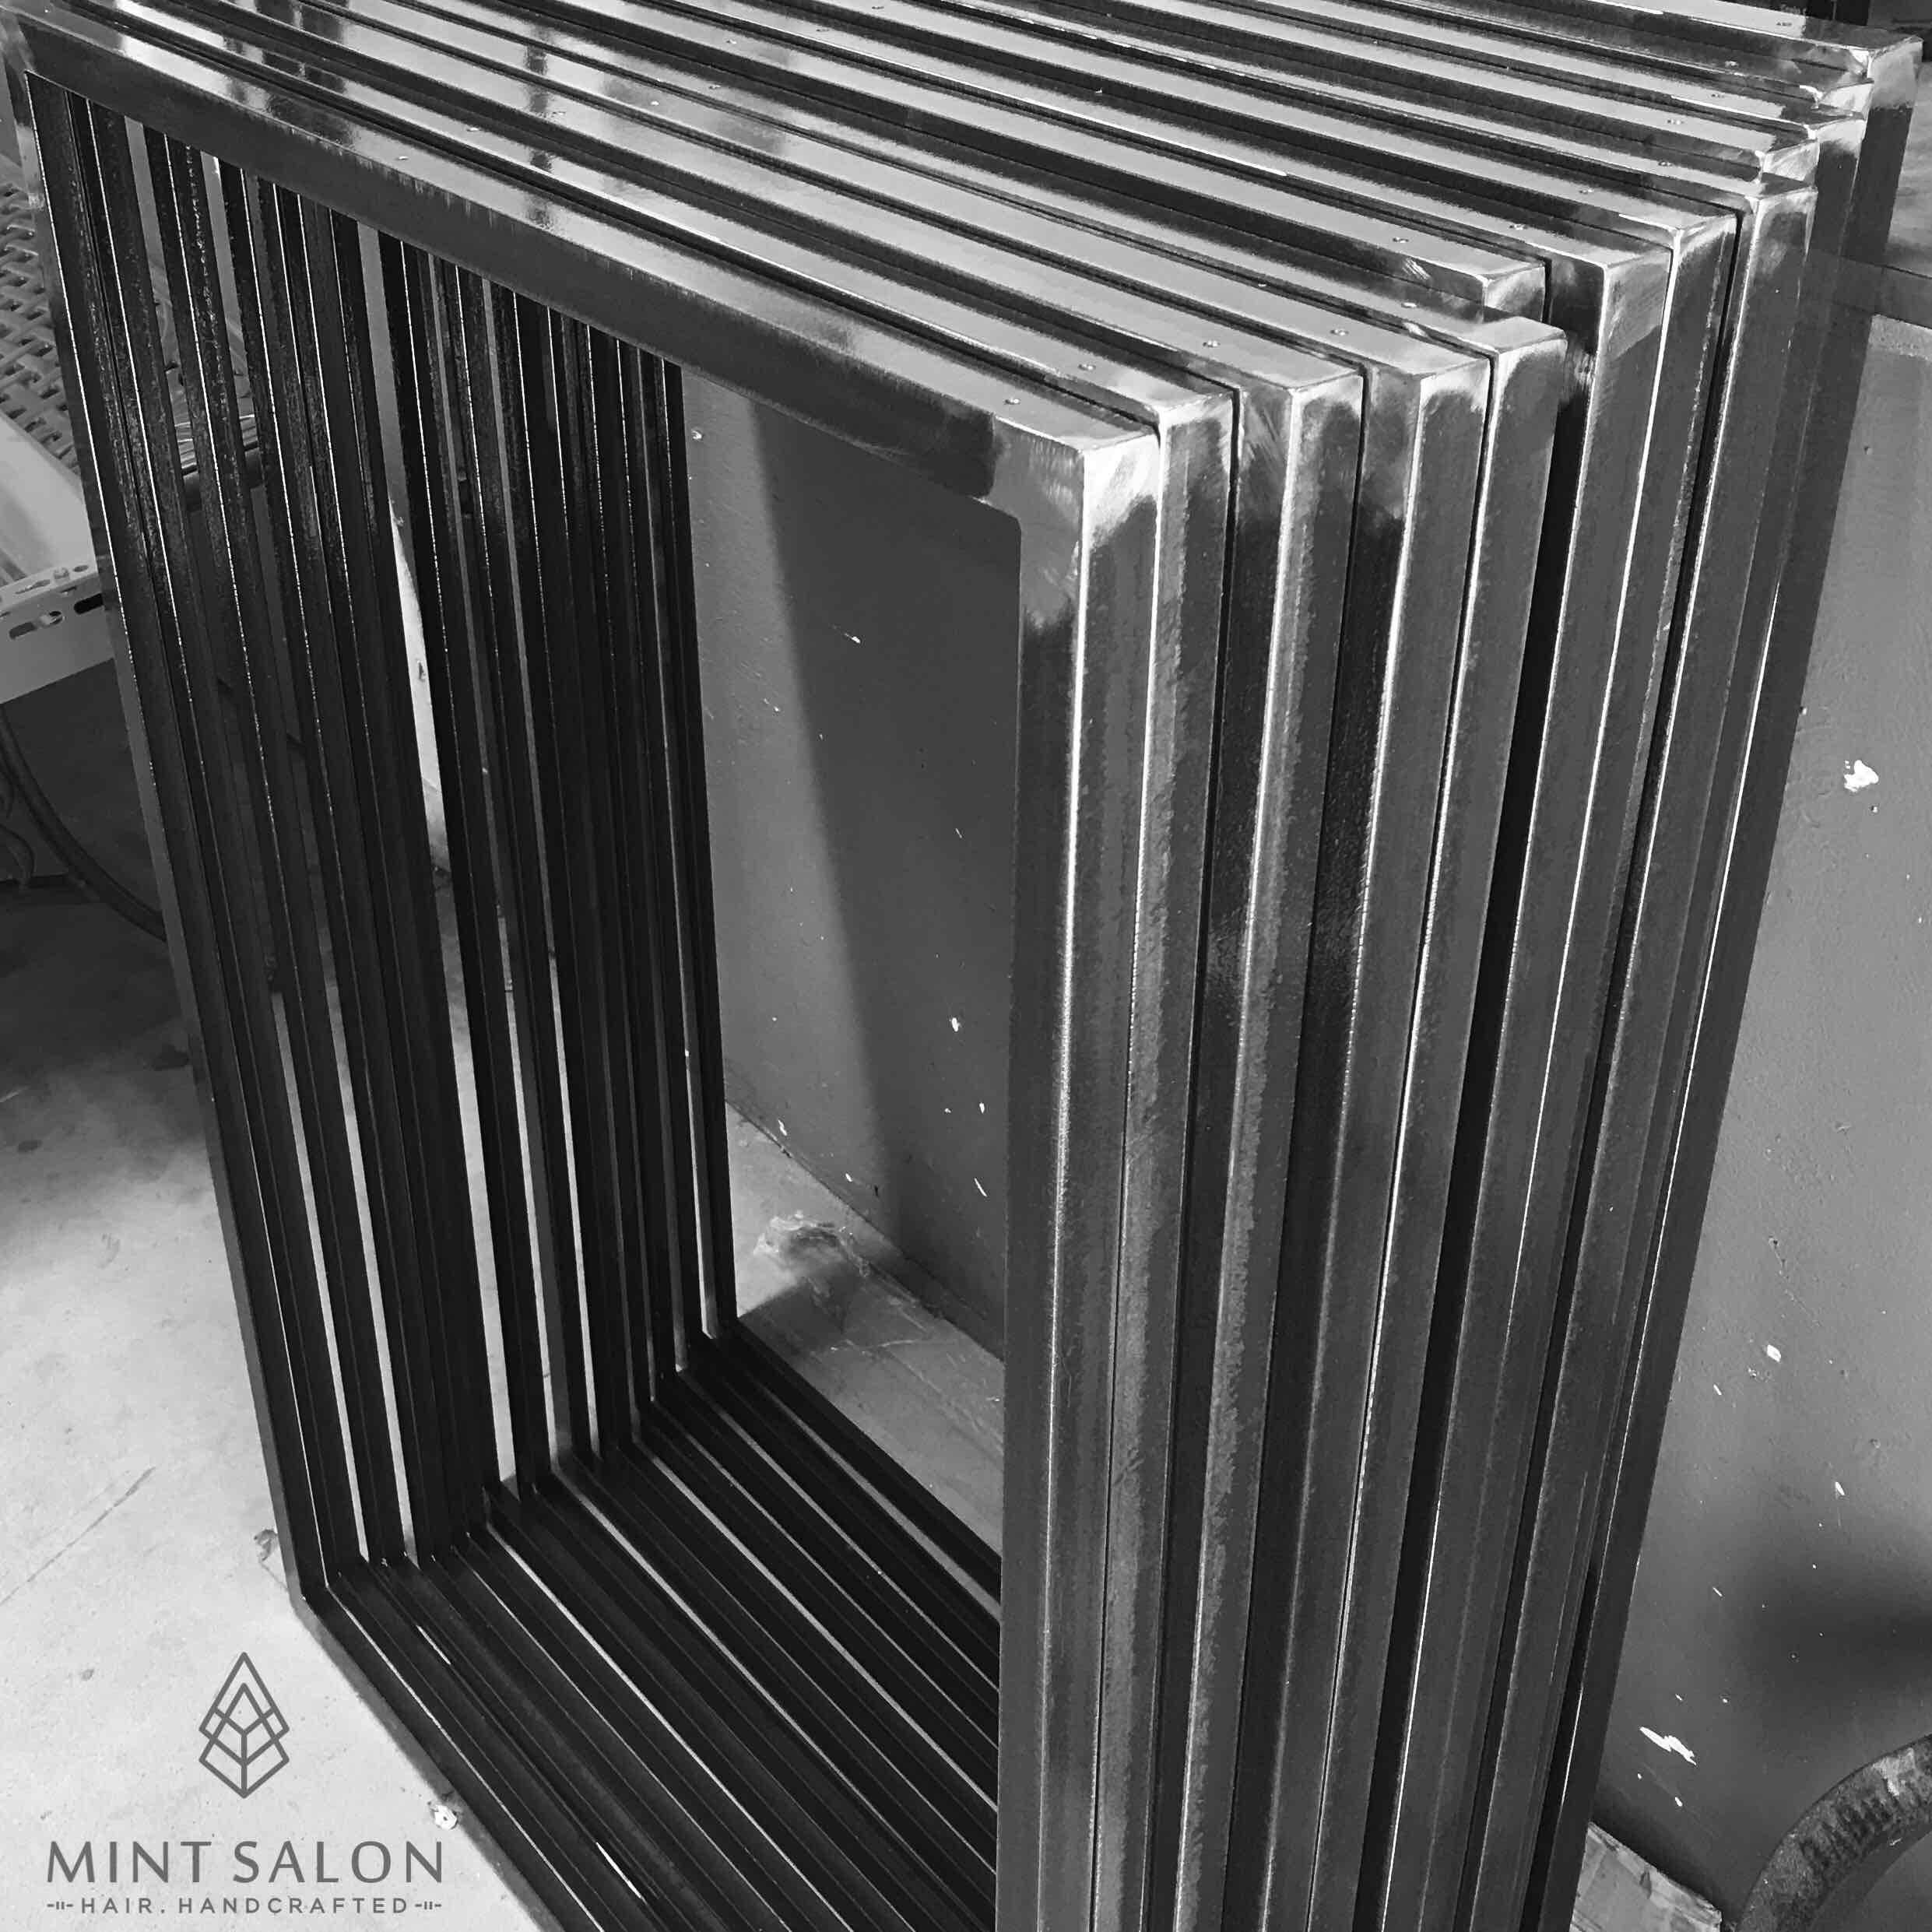 Steel mirror frames ready for wood trim and mirrors.